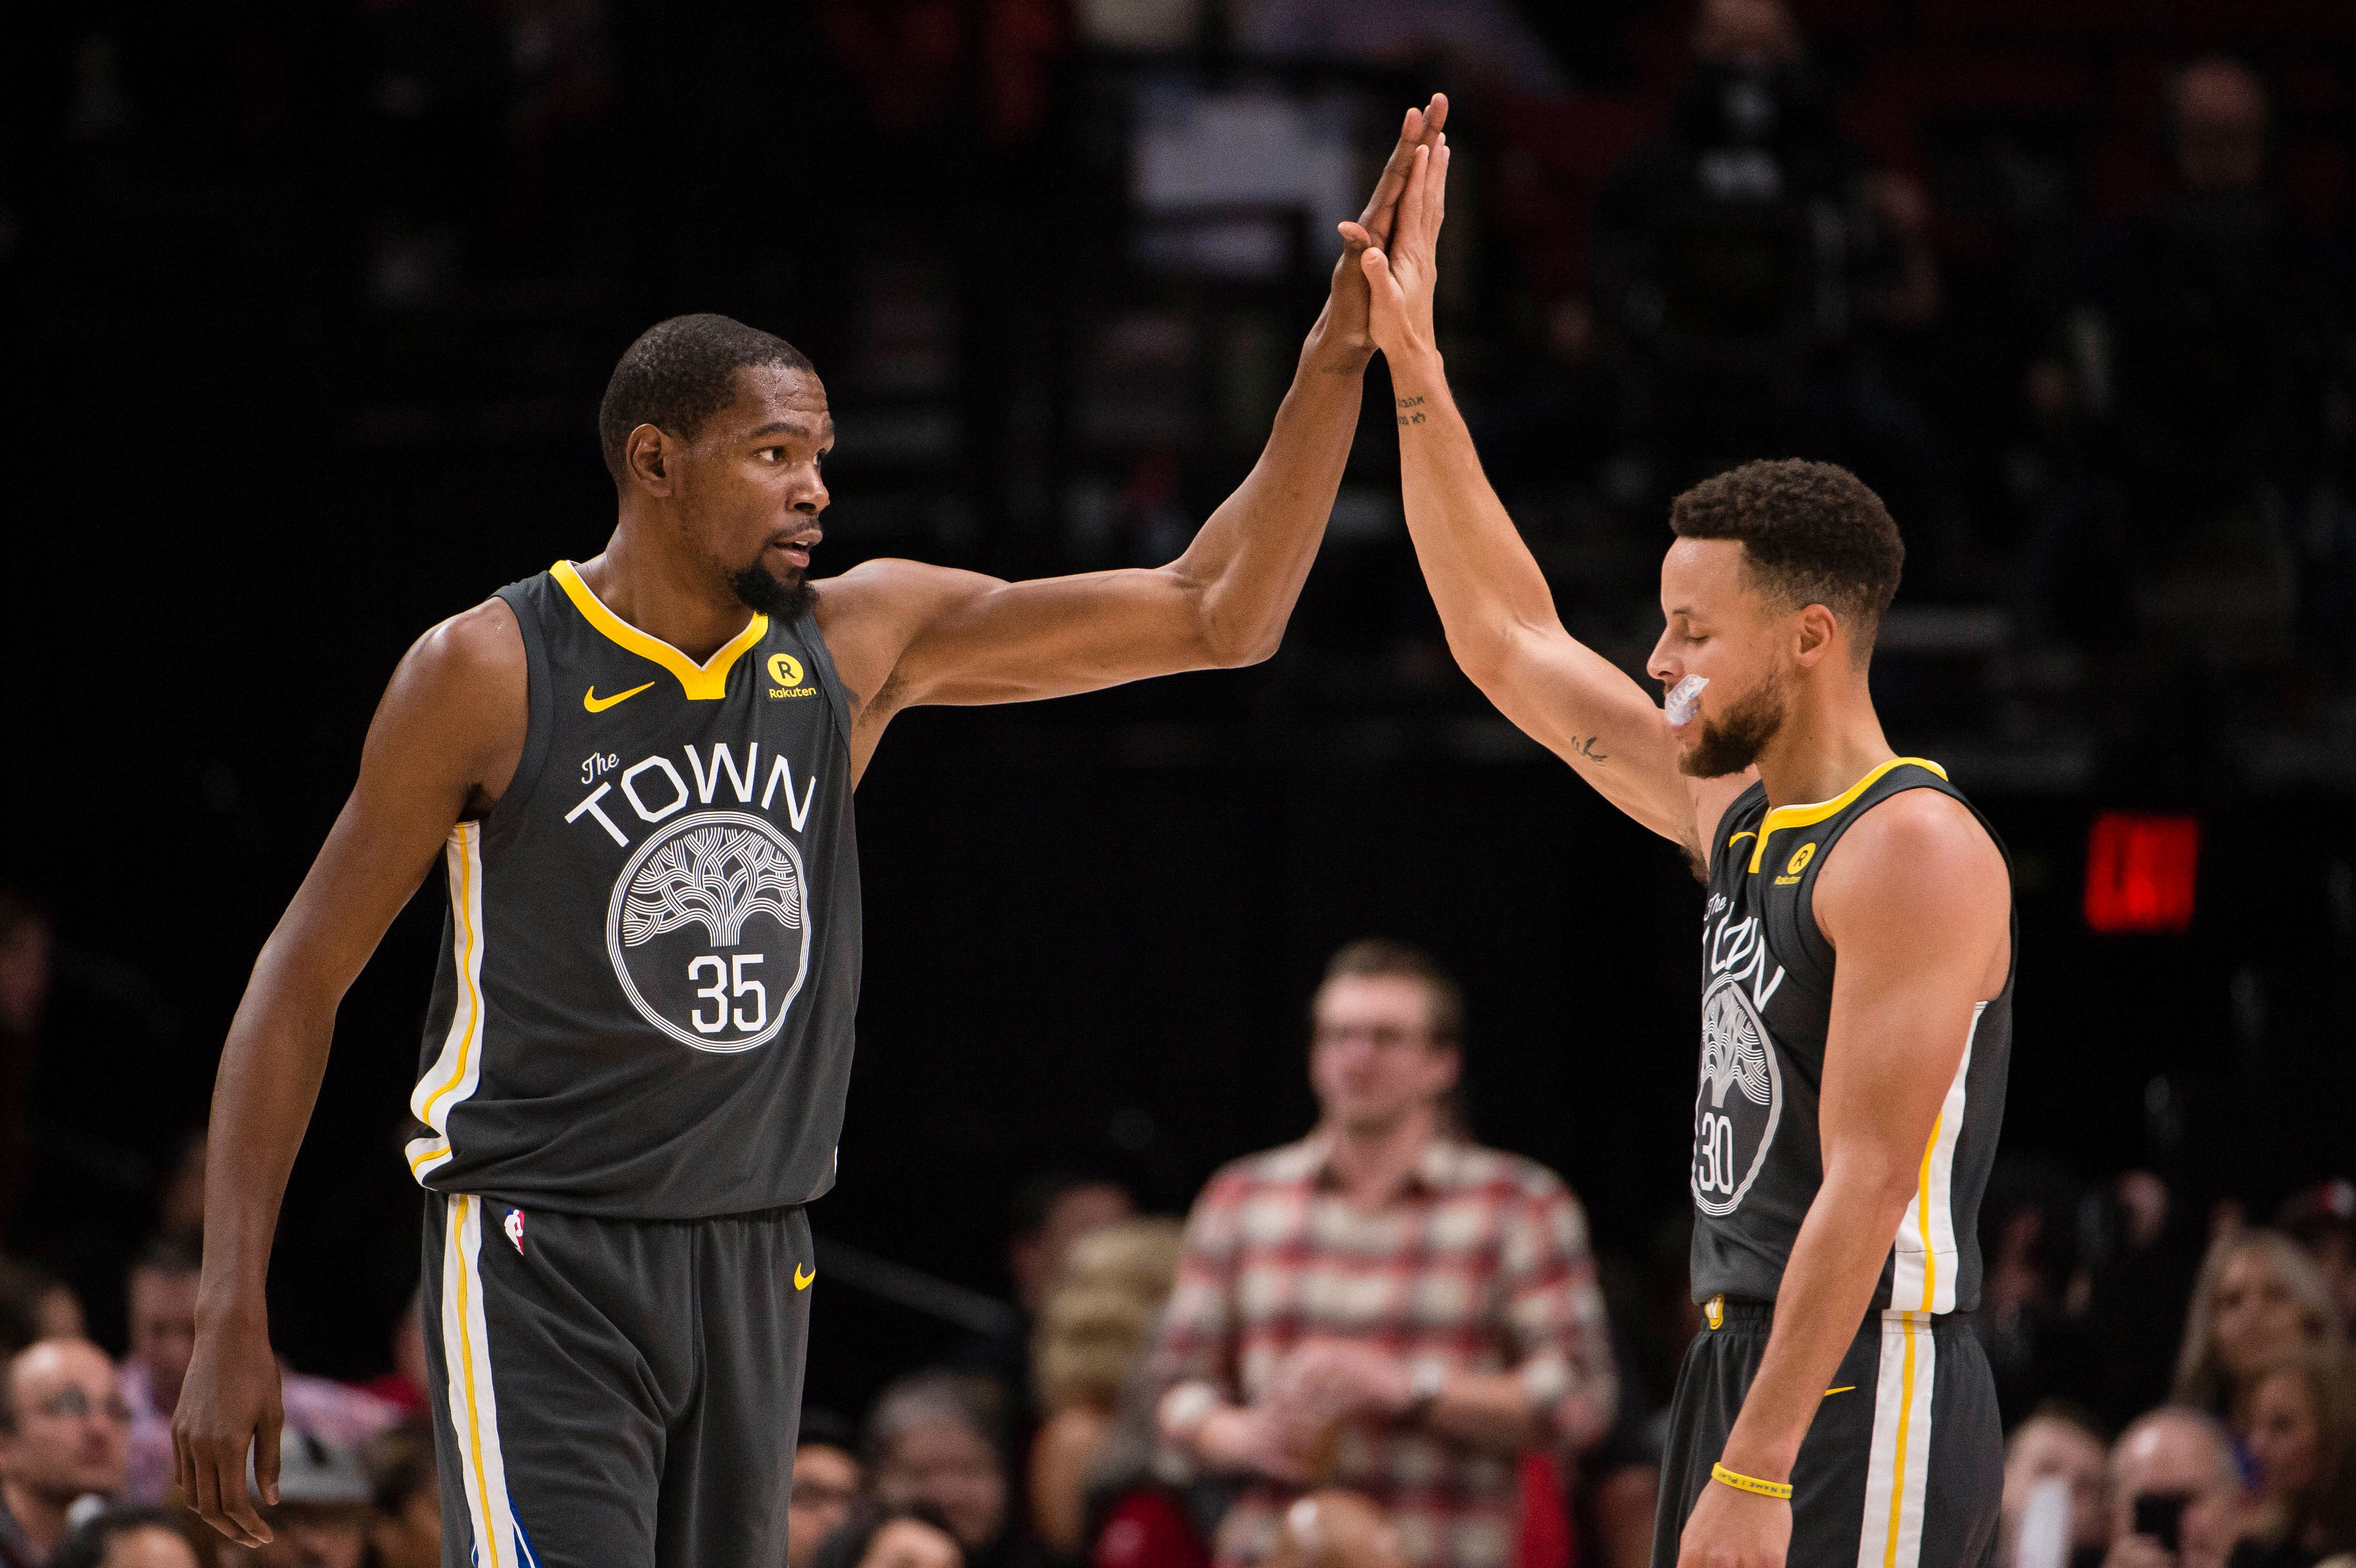 Feb 14, 2018; Portland, OR, USA; Golden State Warriors forward Kevin Durant (35) high-fives guard Stephen Curry (30) during the second half in a game agains the Portland Trail Blazers at the Moda Center. The Trail Blazers won 123-117. Mandatory Credit: Troy Wayrynen-USA TODAY Sports